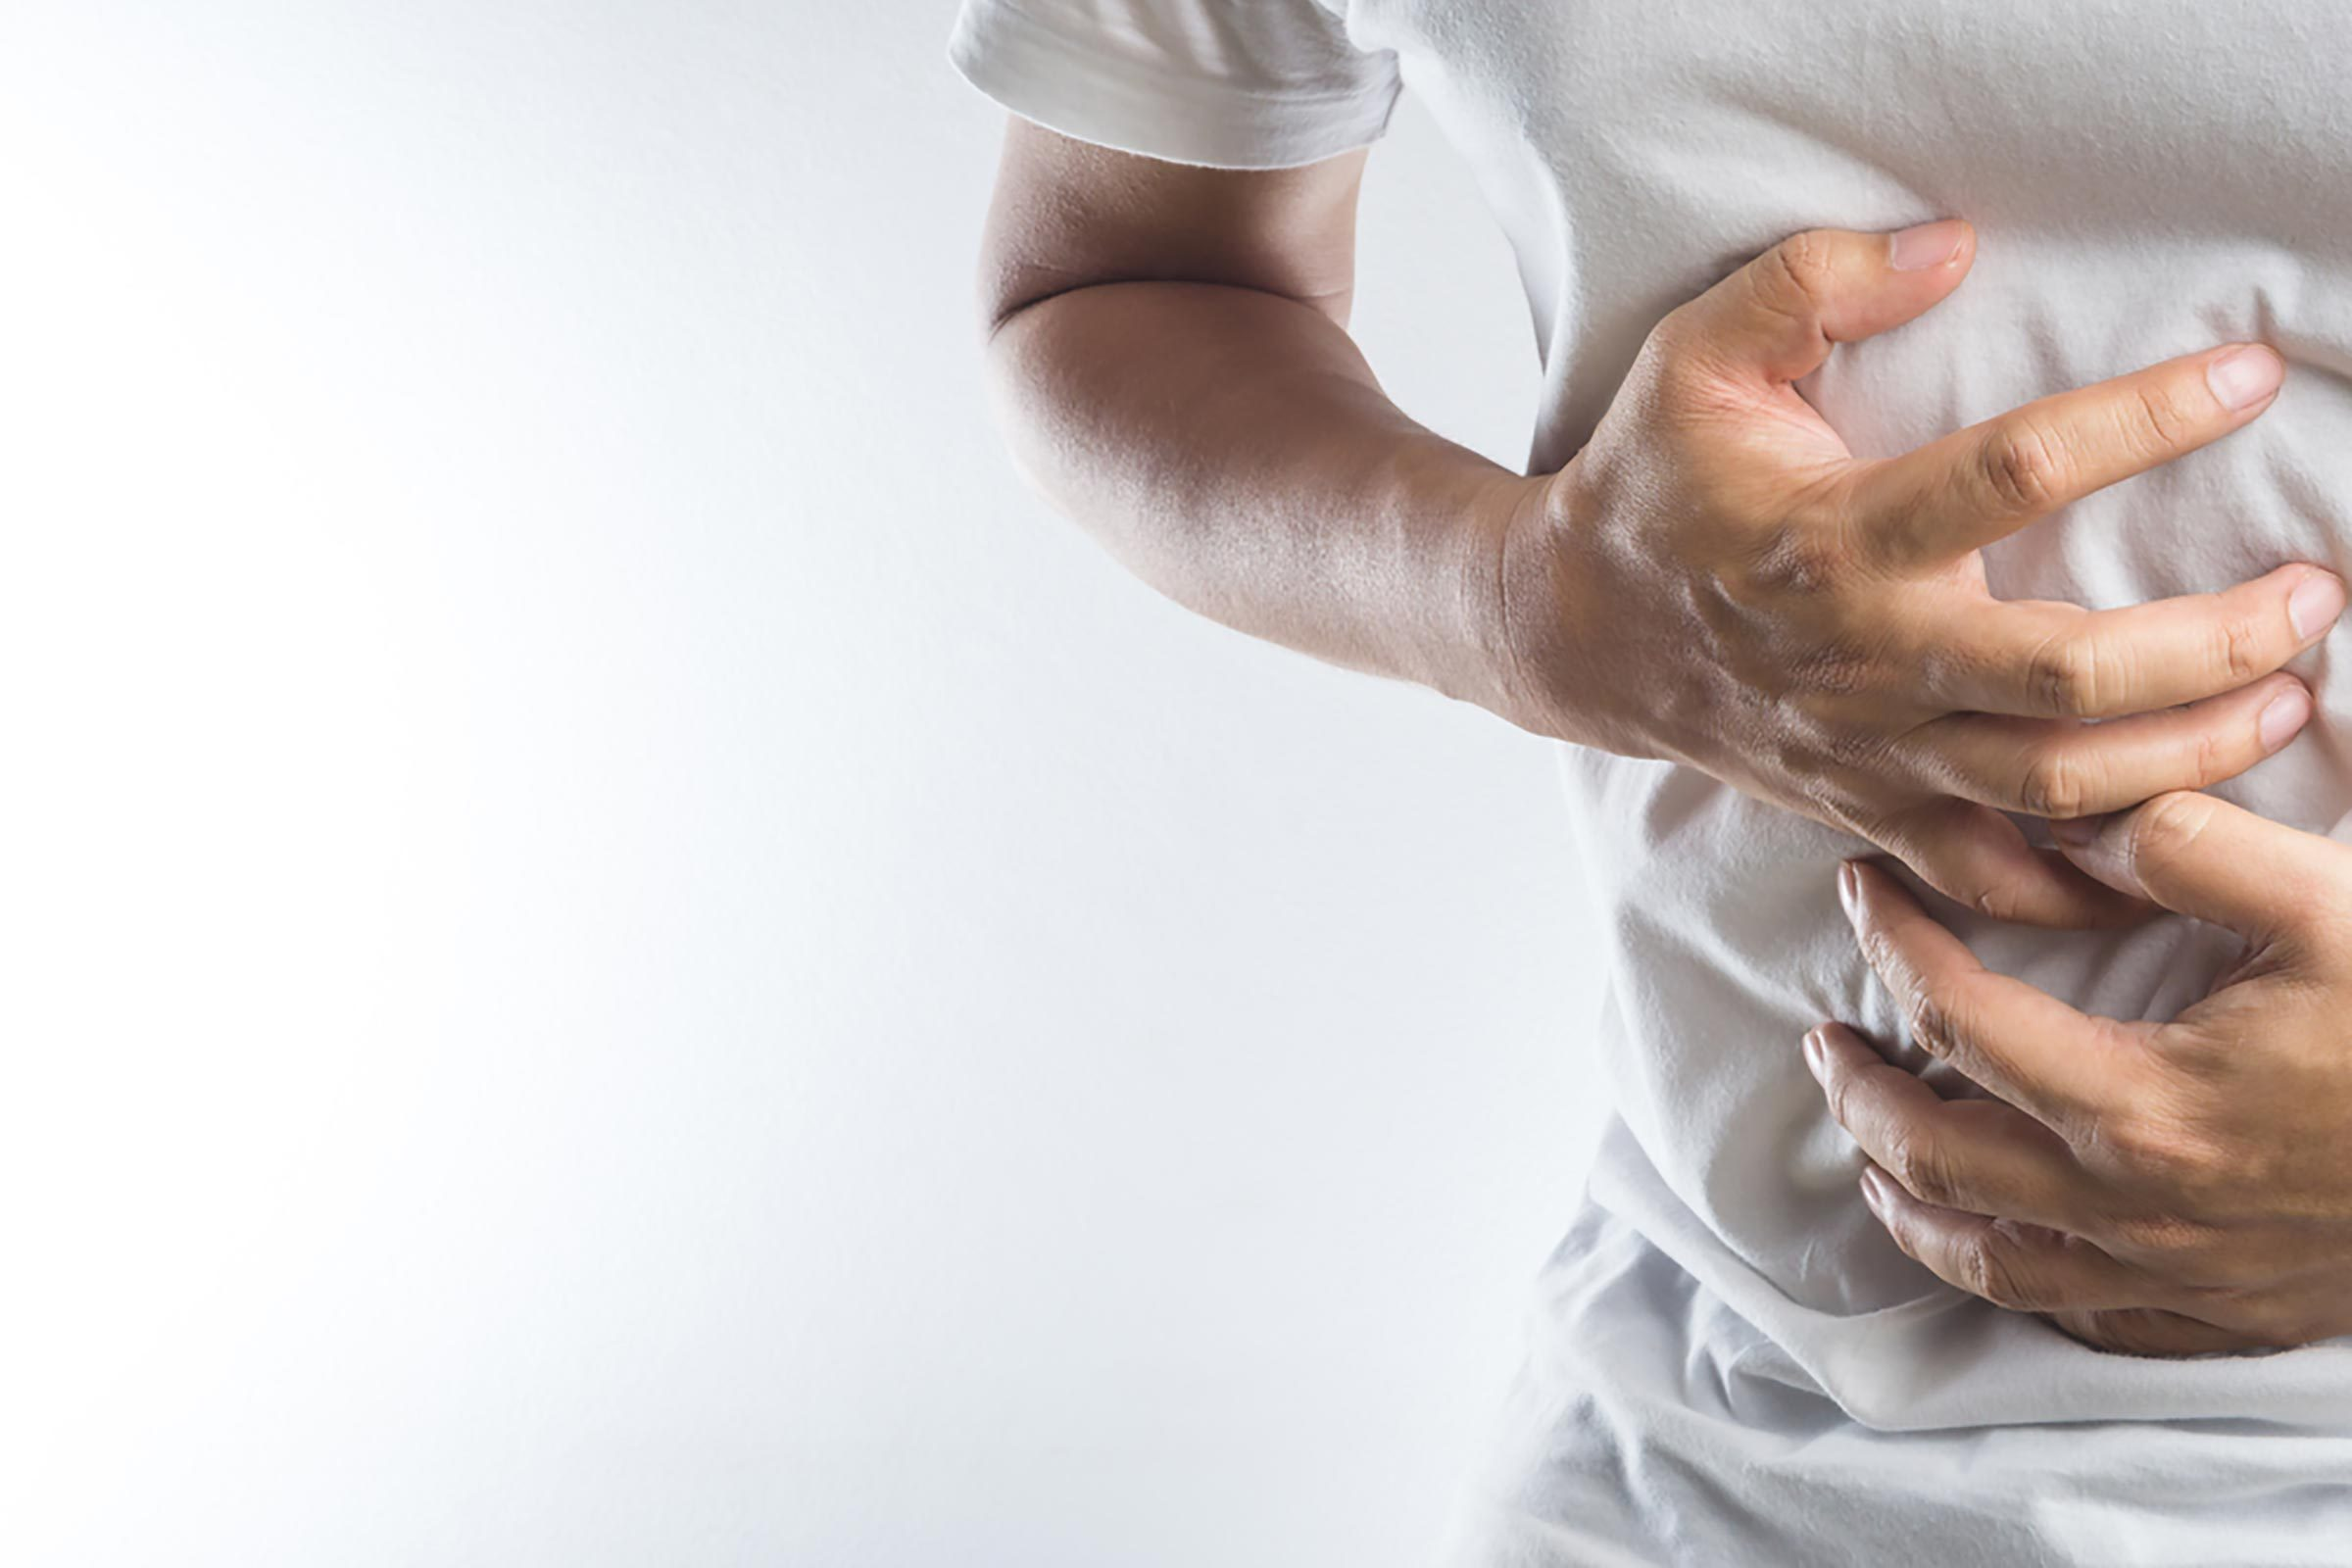 Man in a white t-shirt clutching his stomach